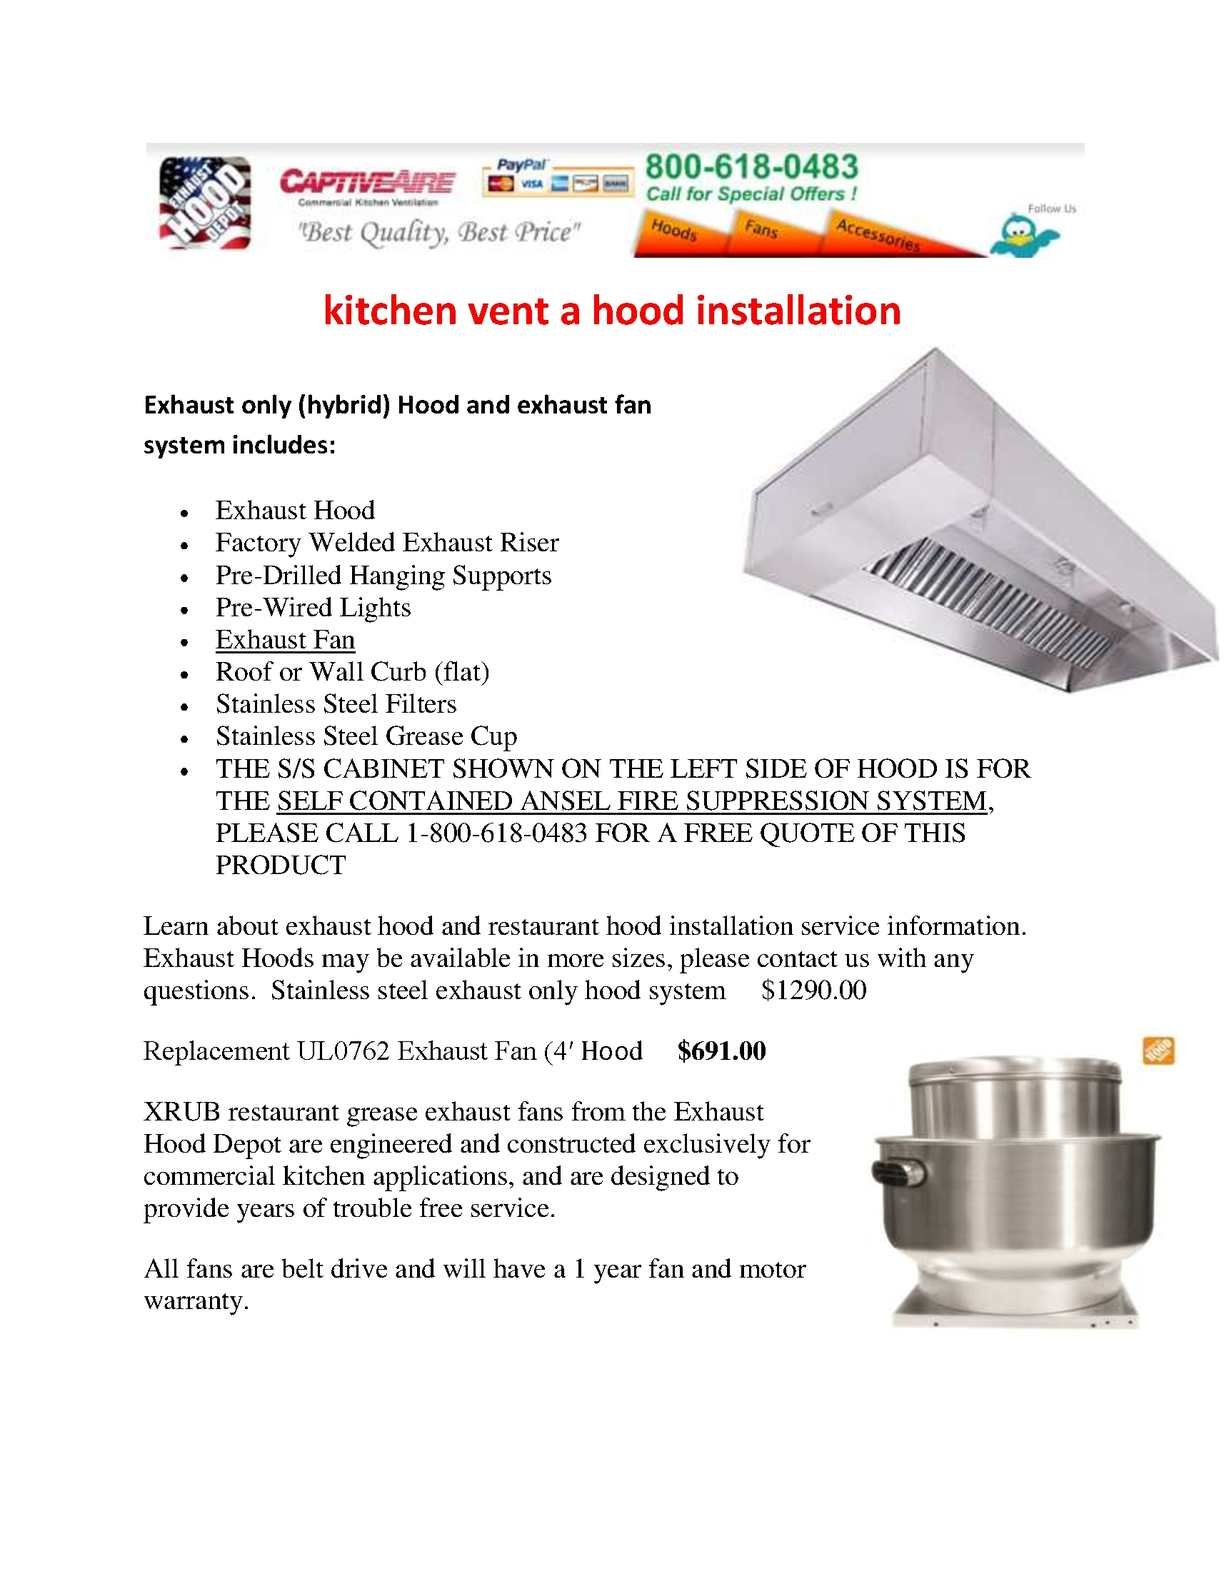 Calam o kitchen vent a hood installation for Restaurant exhaust fan motor replacement